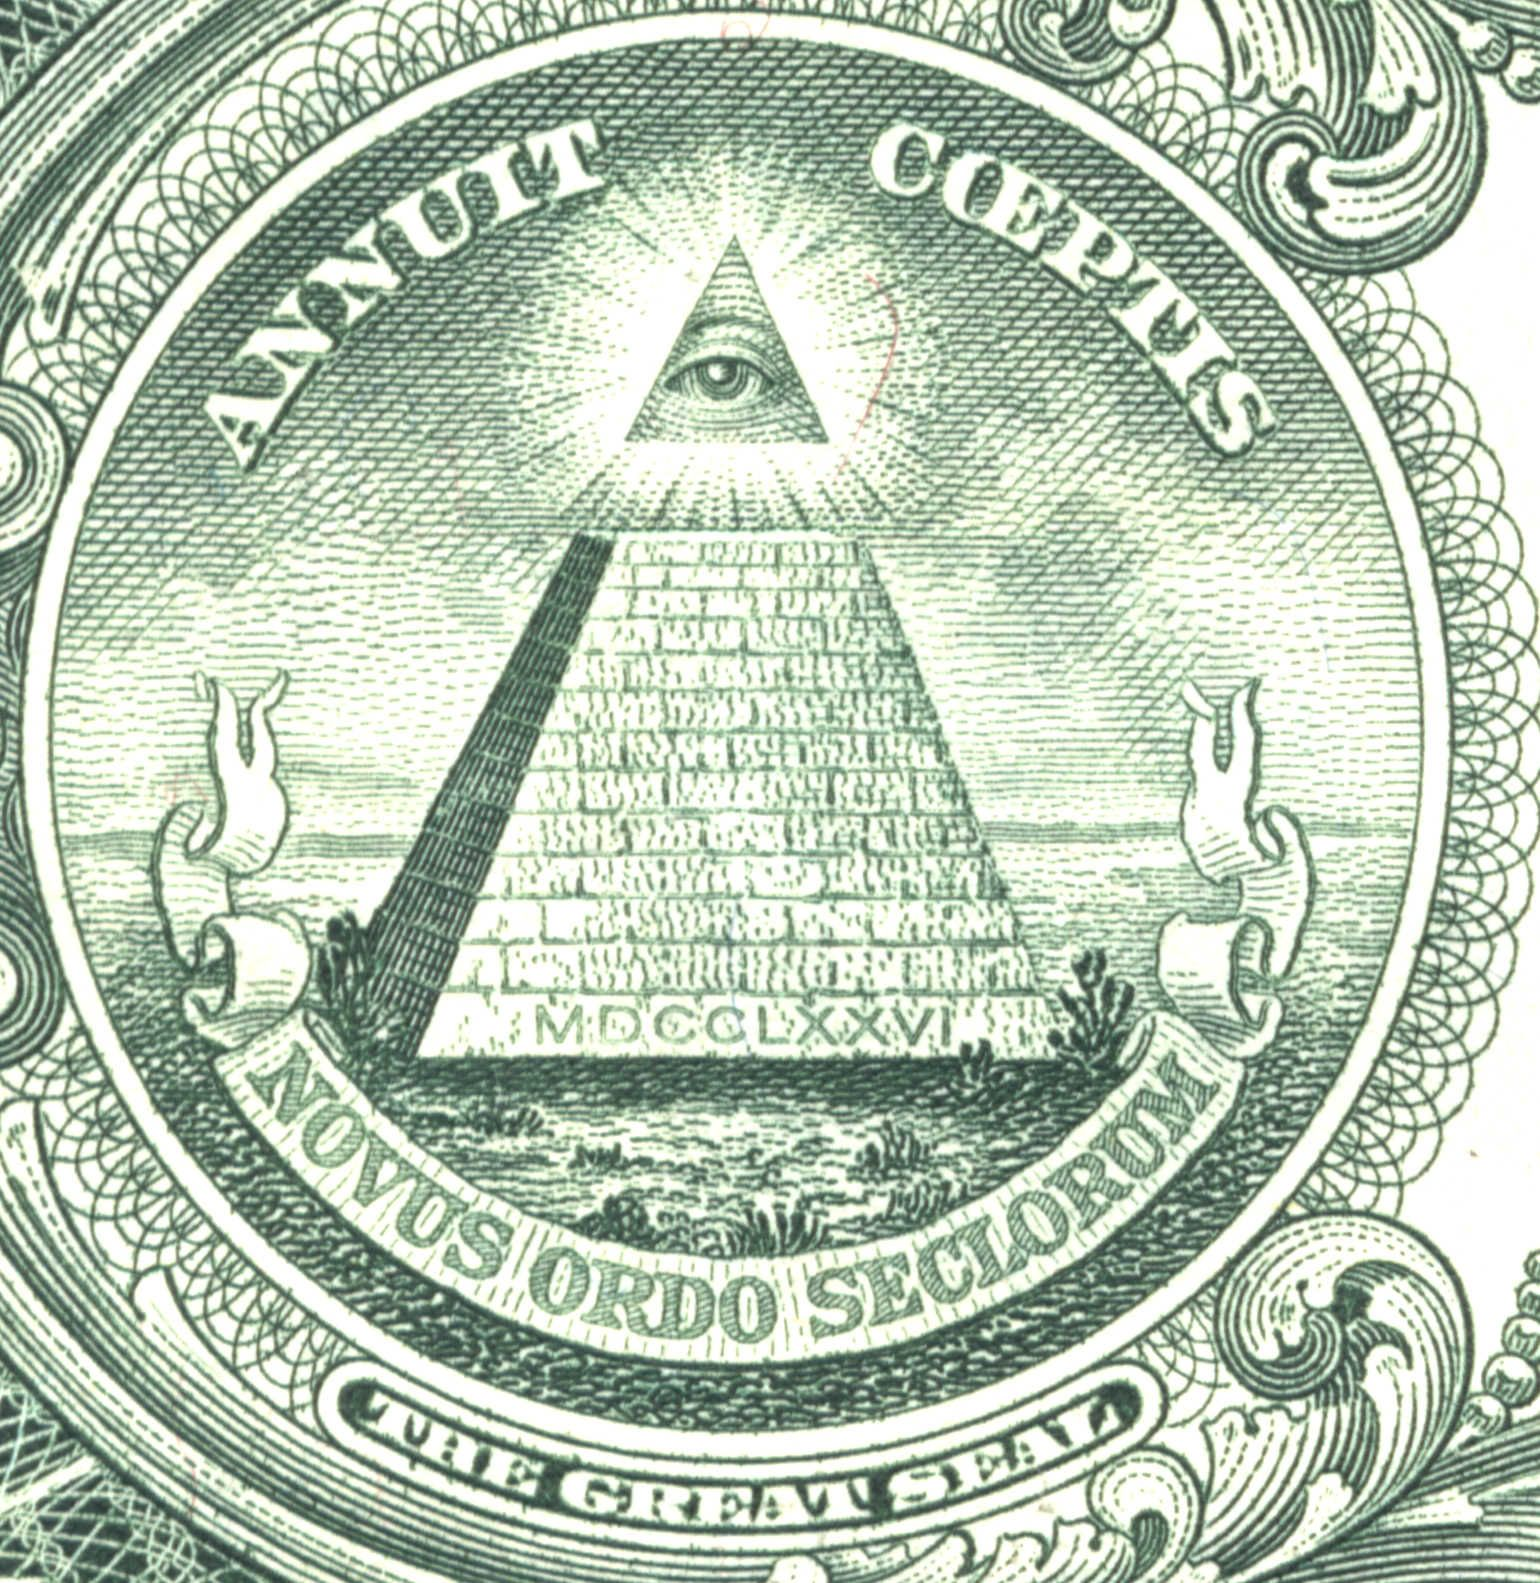 All On The Illuminati: Zion Border Control: Rastafari Vision, InI-sight VS